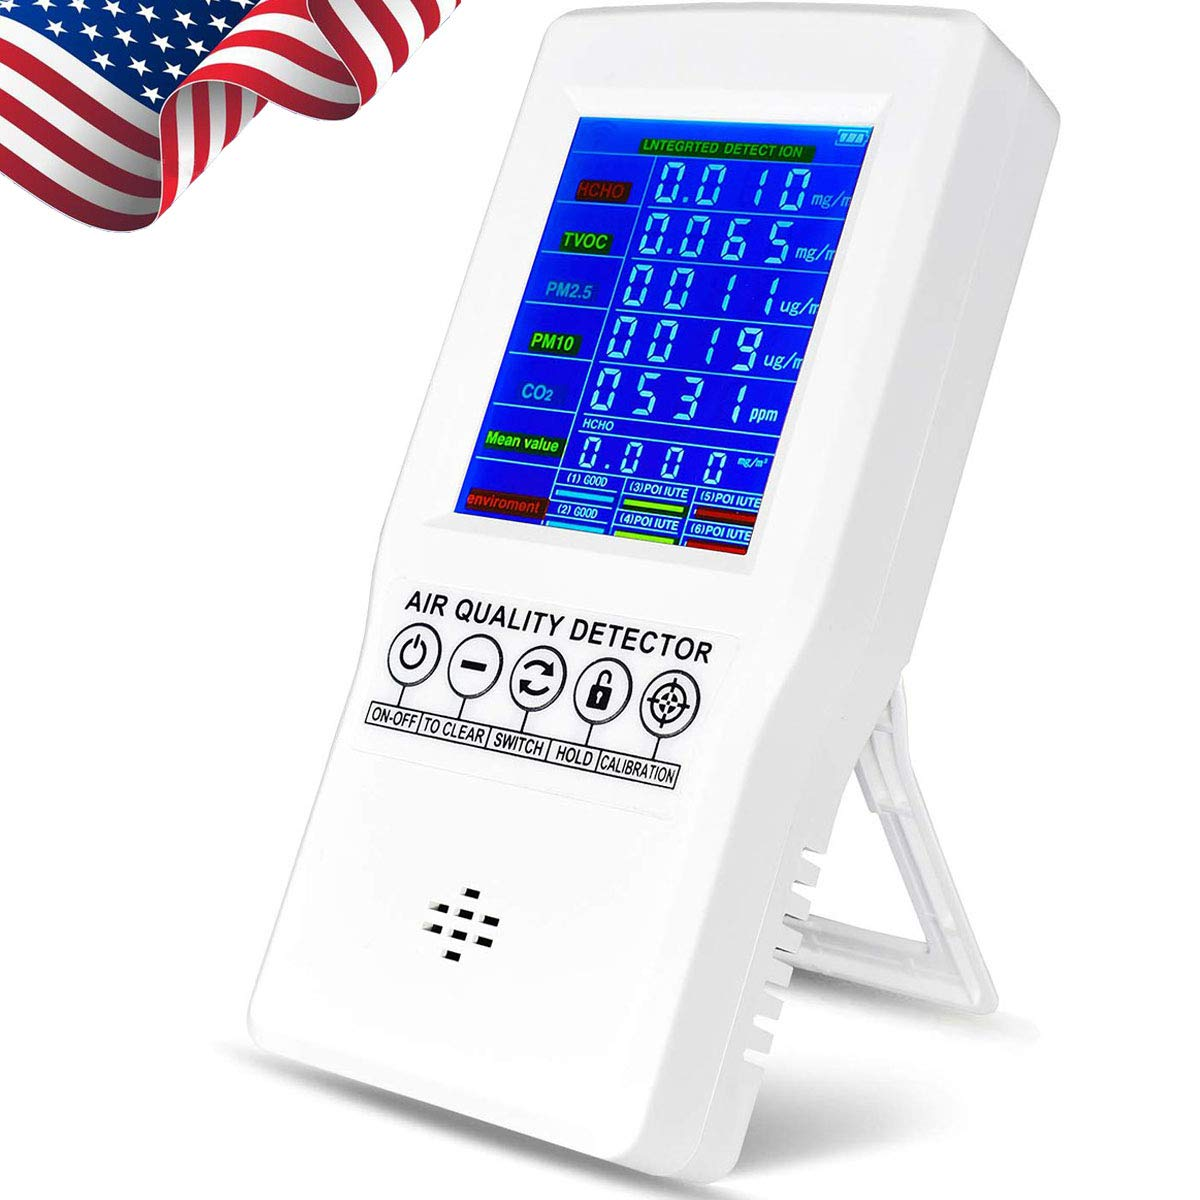 Air Quality Monitor Indoor, Accurate Air Tester Detector for Formaldehyde(HCHO) CO2 TVOC PM2.5/PM10, Home Air Test Kits with Colorful LCD Screen, Suitable for Home Office and Various Occasion (White)